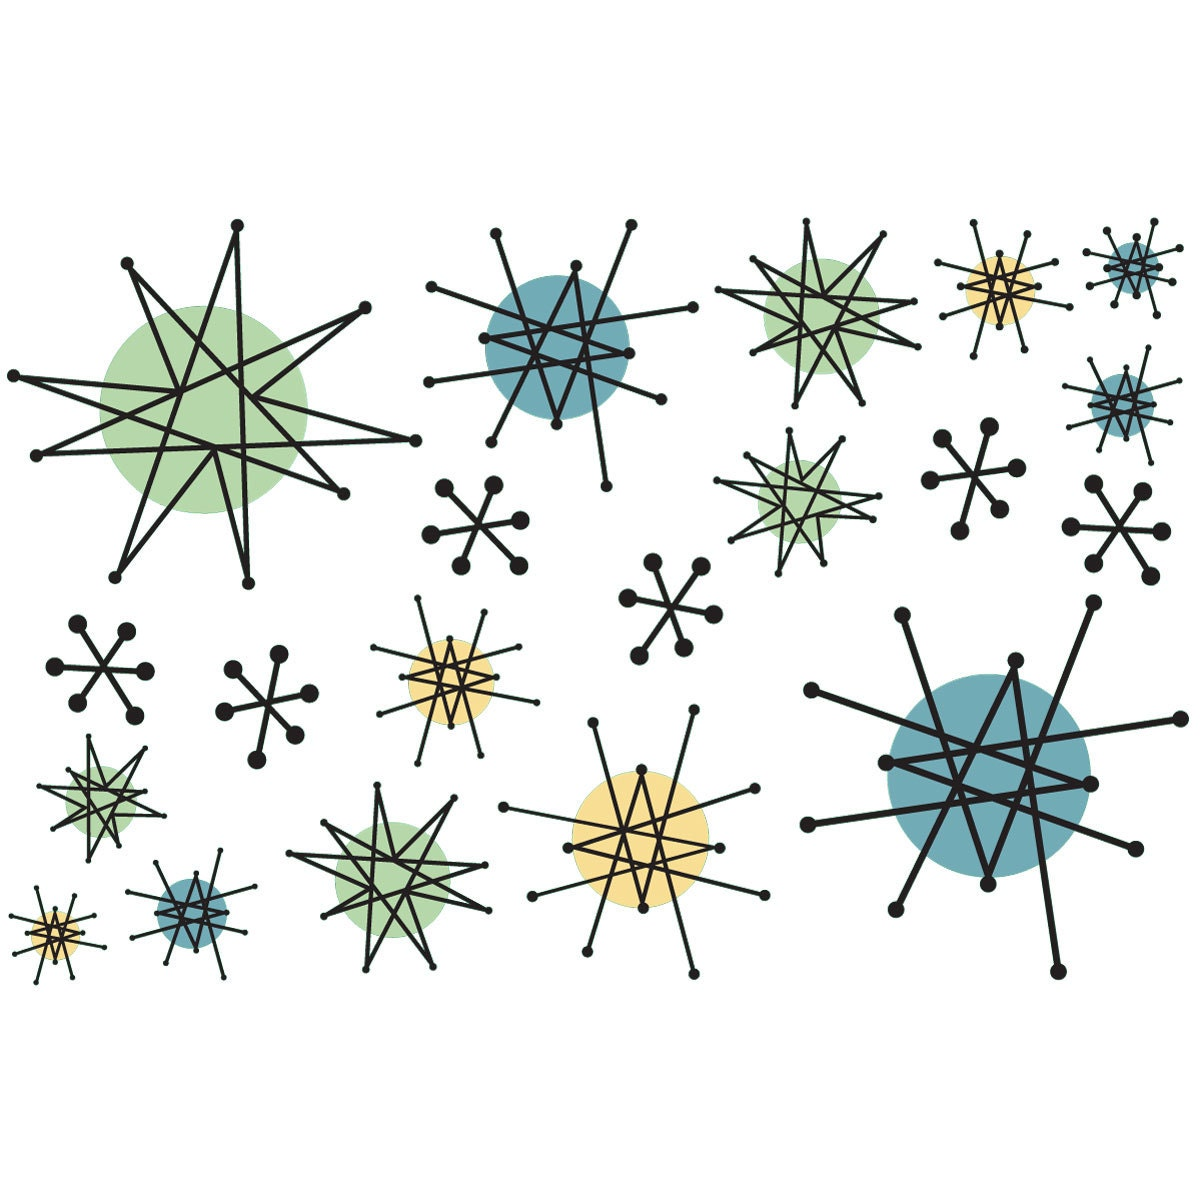 Wall Stickers How To Apply Atomic Starburst Vinyl Sticker Sheet Of 20 47459